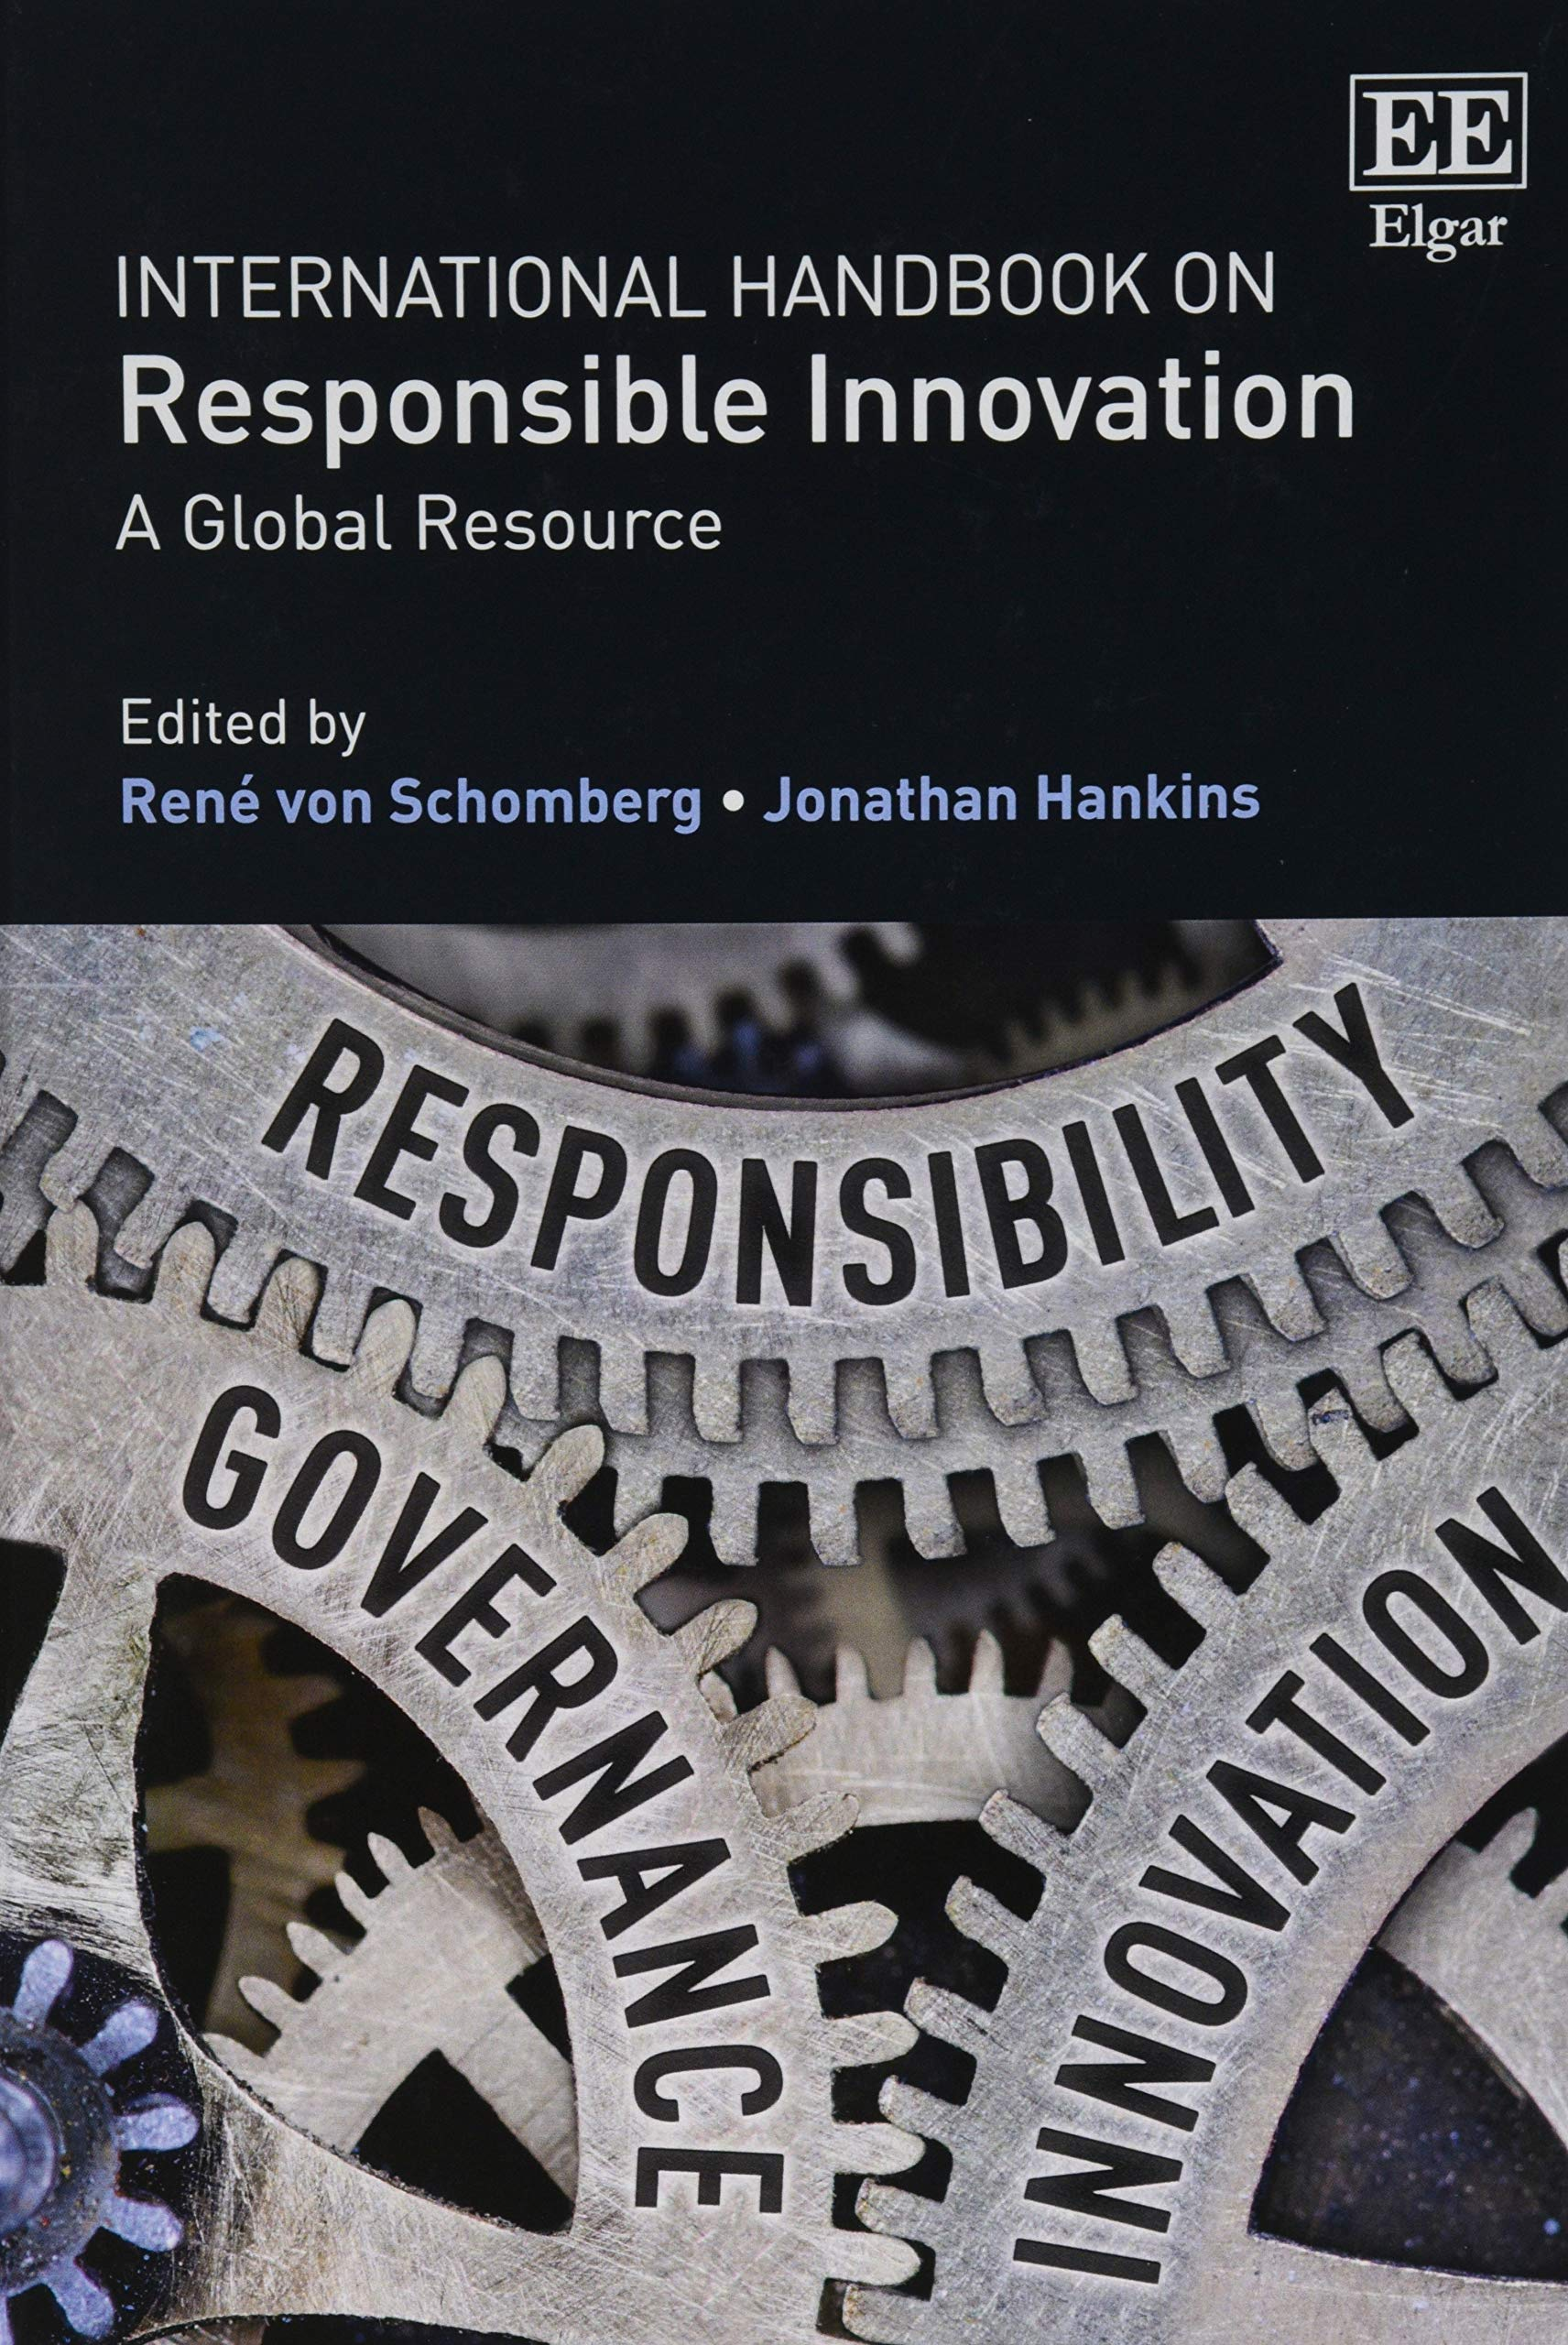 International Handbook on Responsible Innovation: A Global Resource